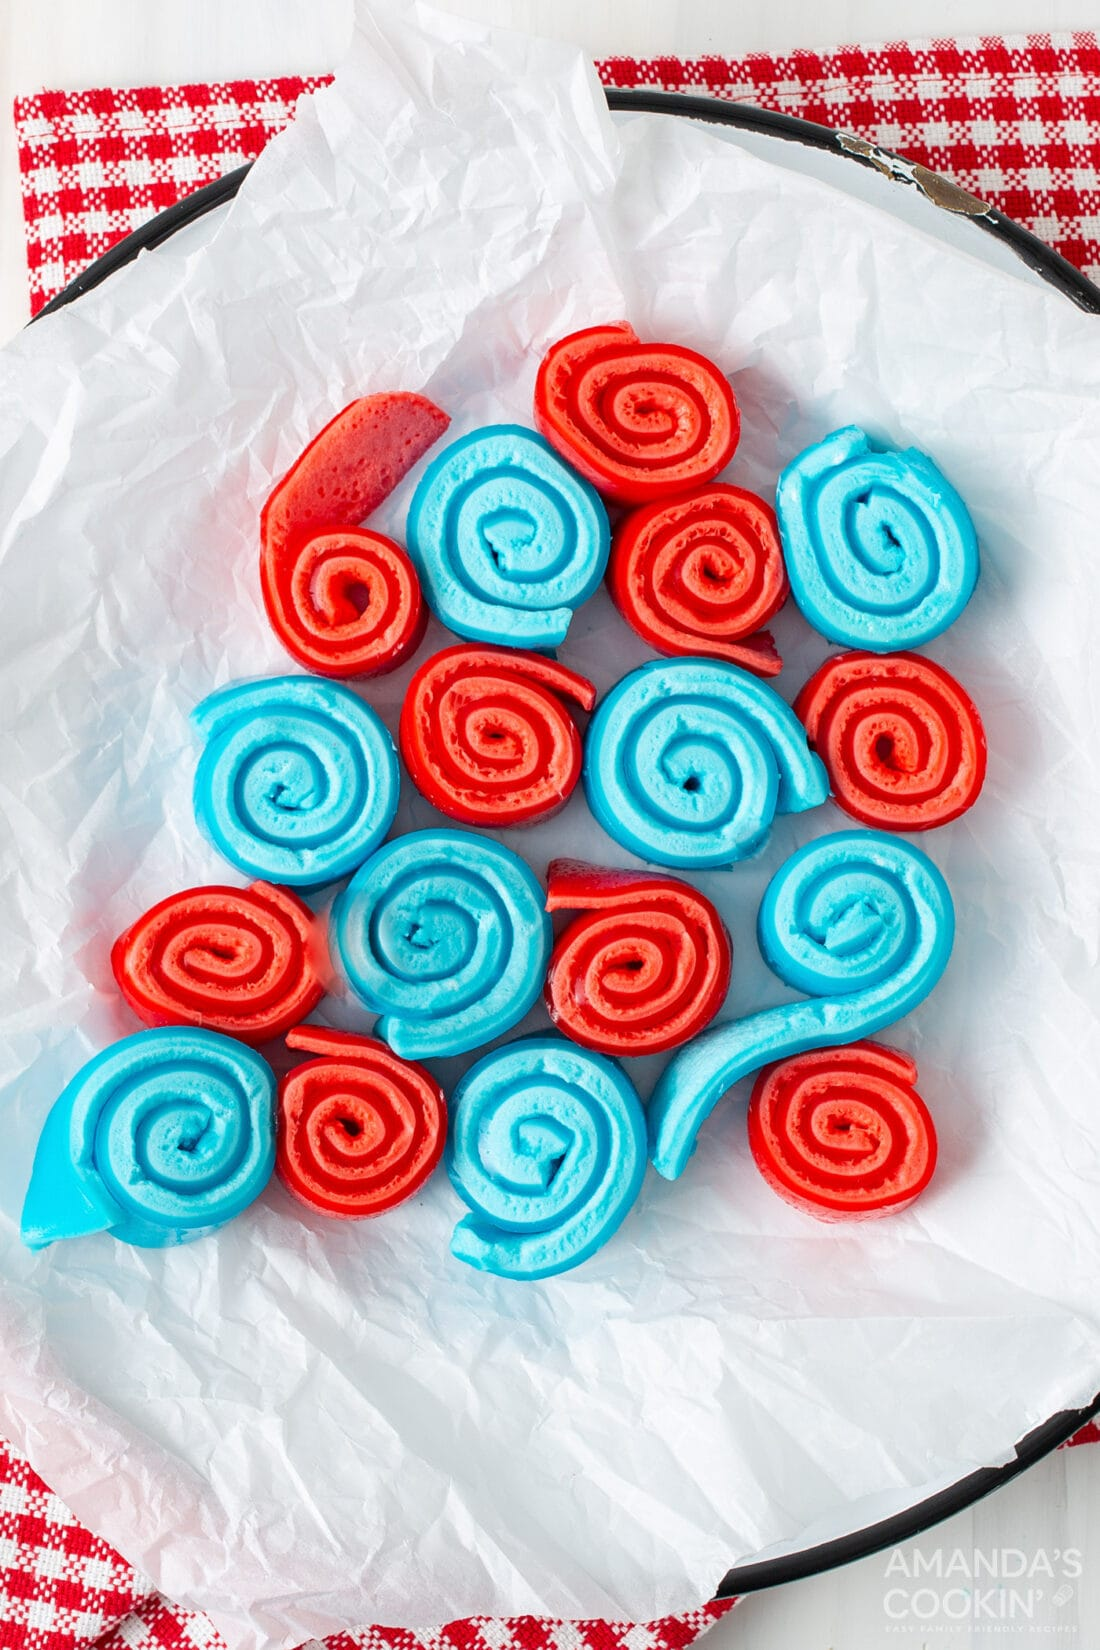 red and blue Jello Roll Ups on a plate